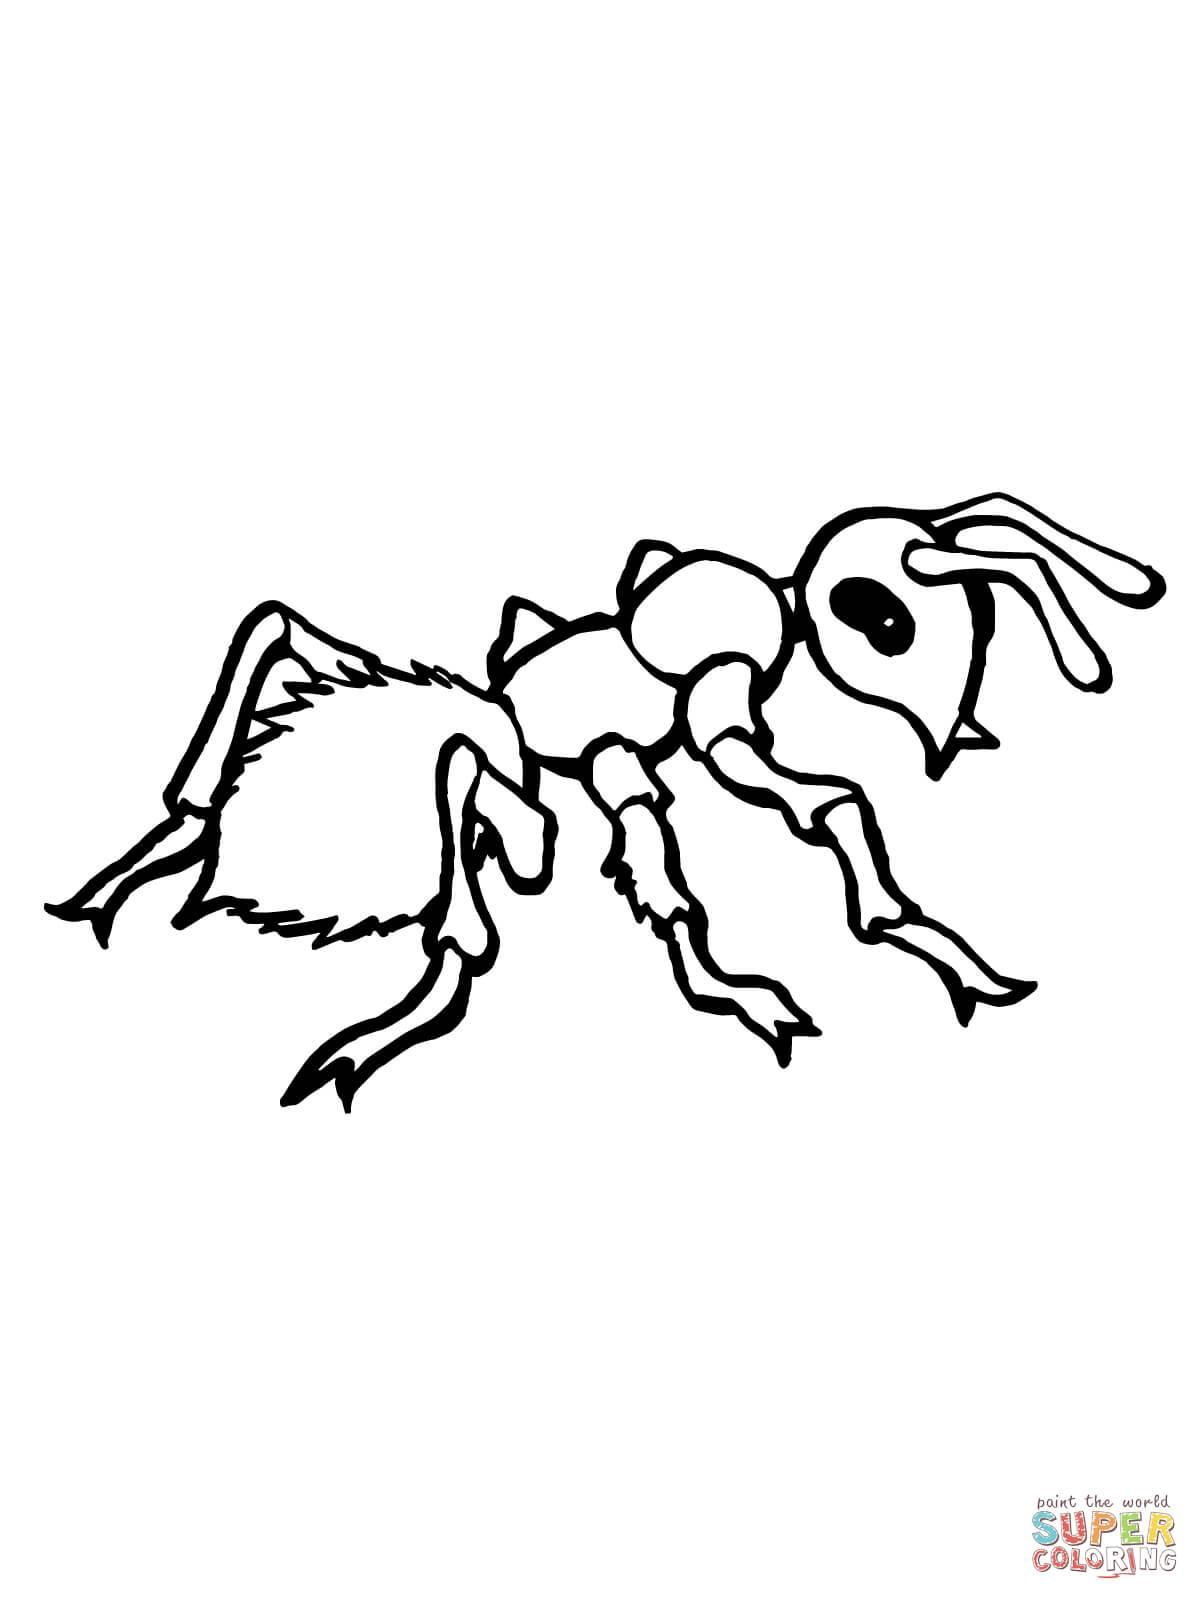 A Is For Ant Coloring Page Insect Coloring Pages Coloring Pages Super Coloring Pages